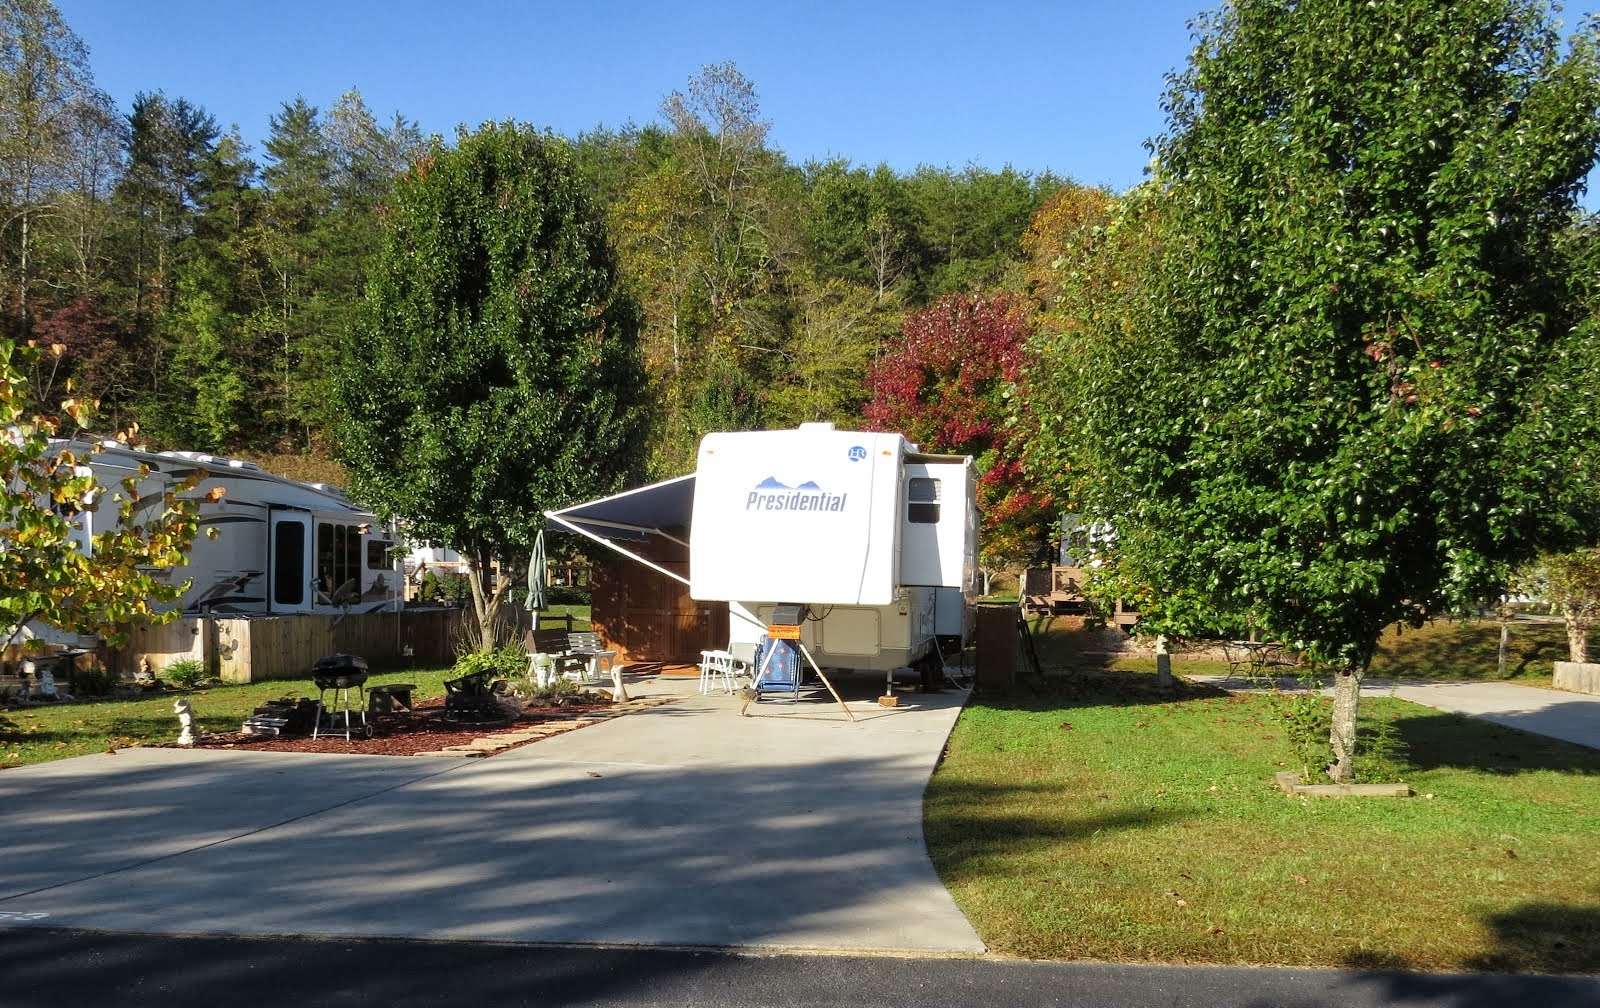 Our RV Lot for Rent - in Blairsville, Georgia mountains